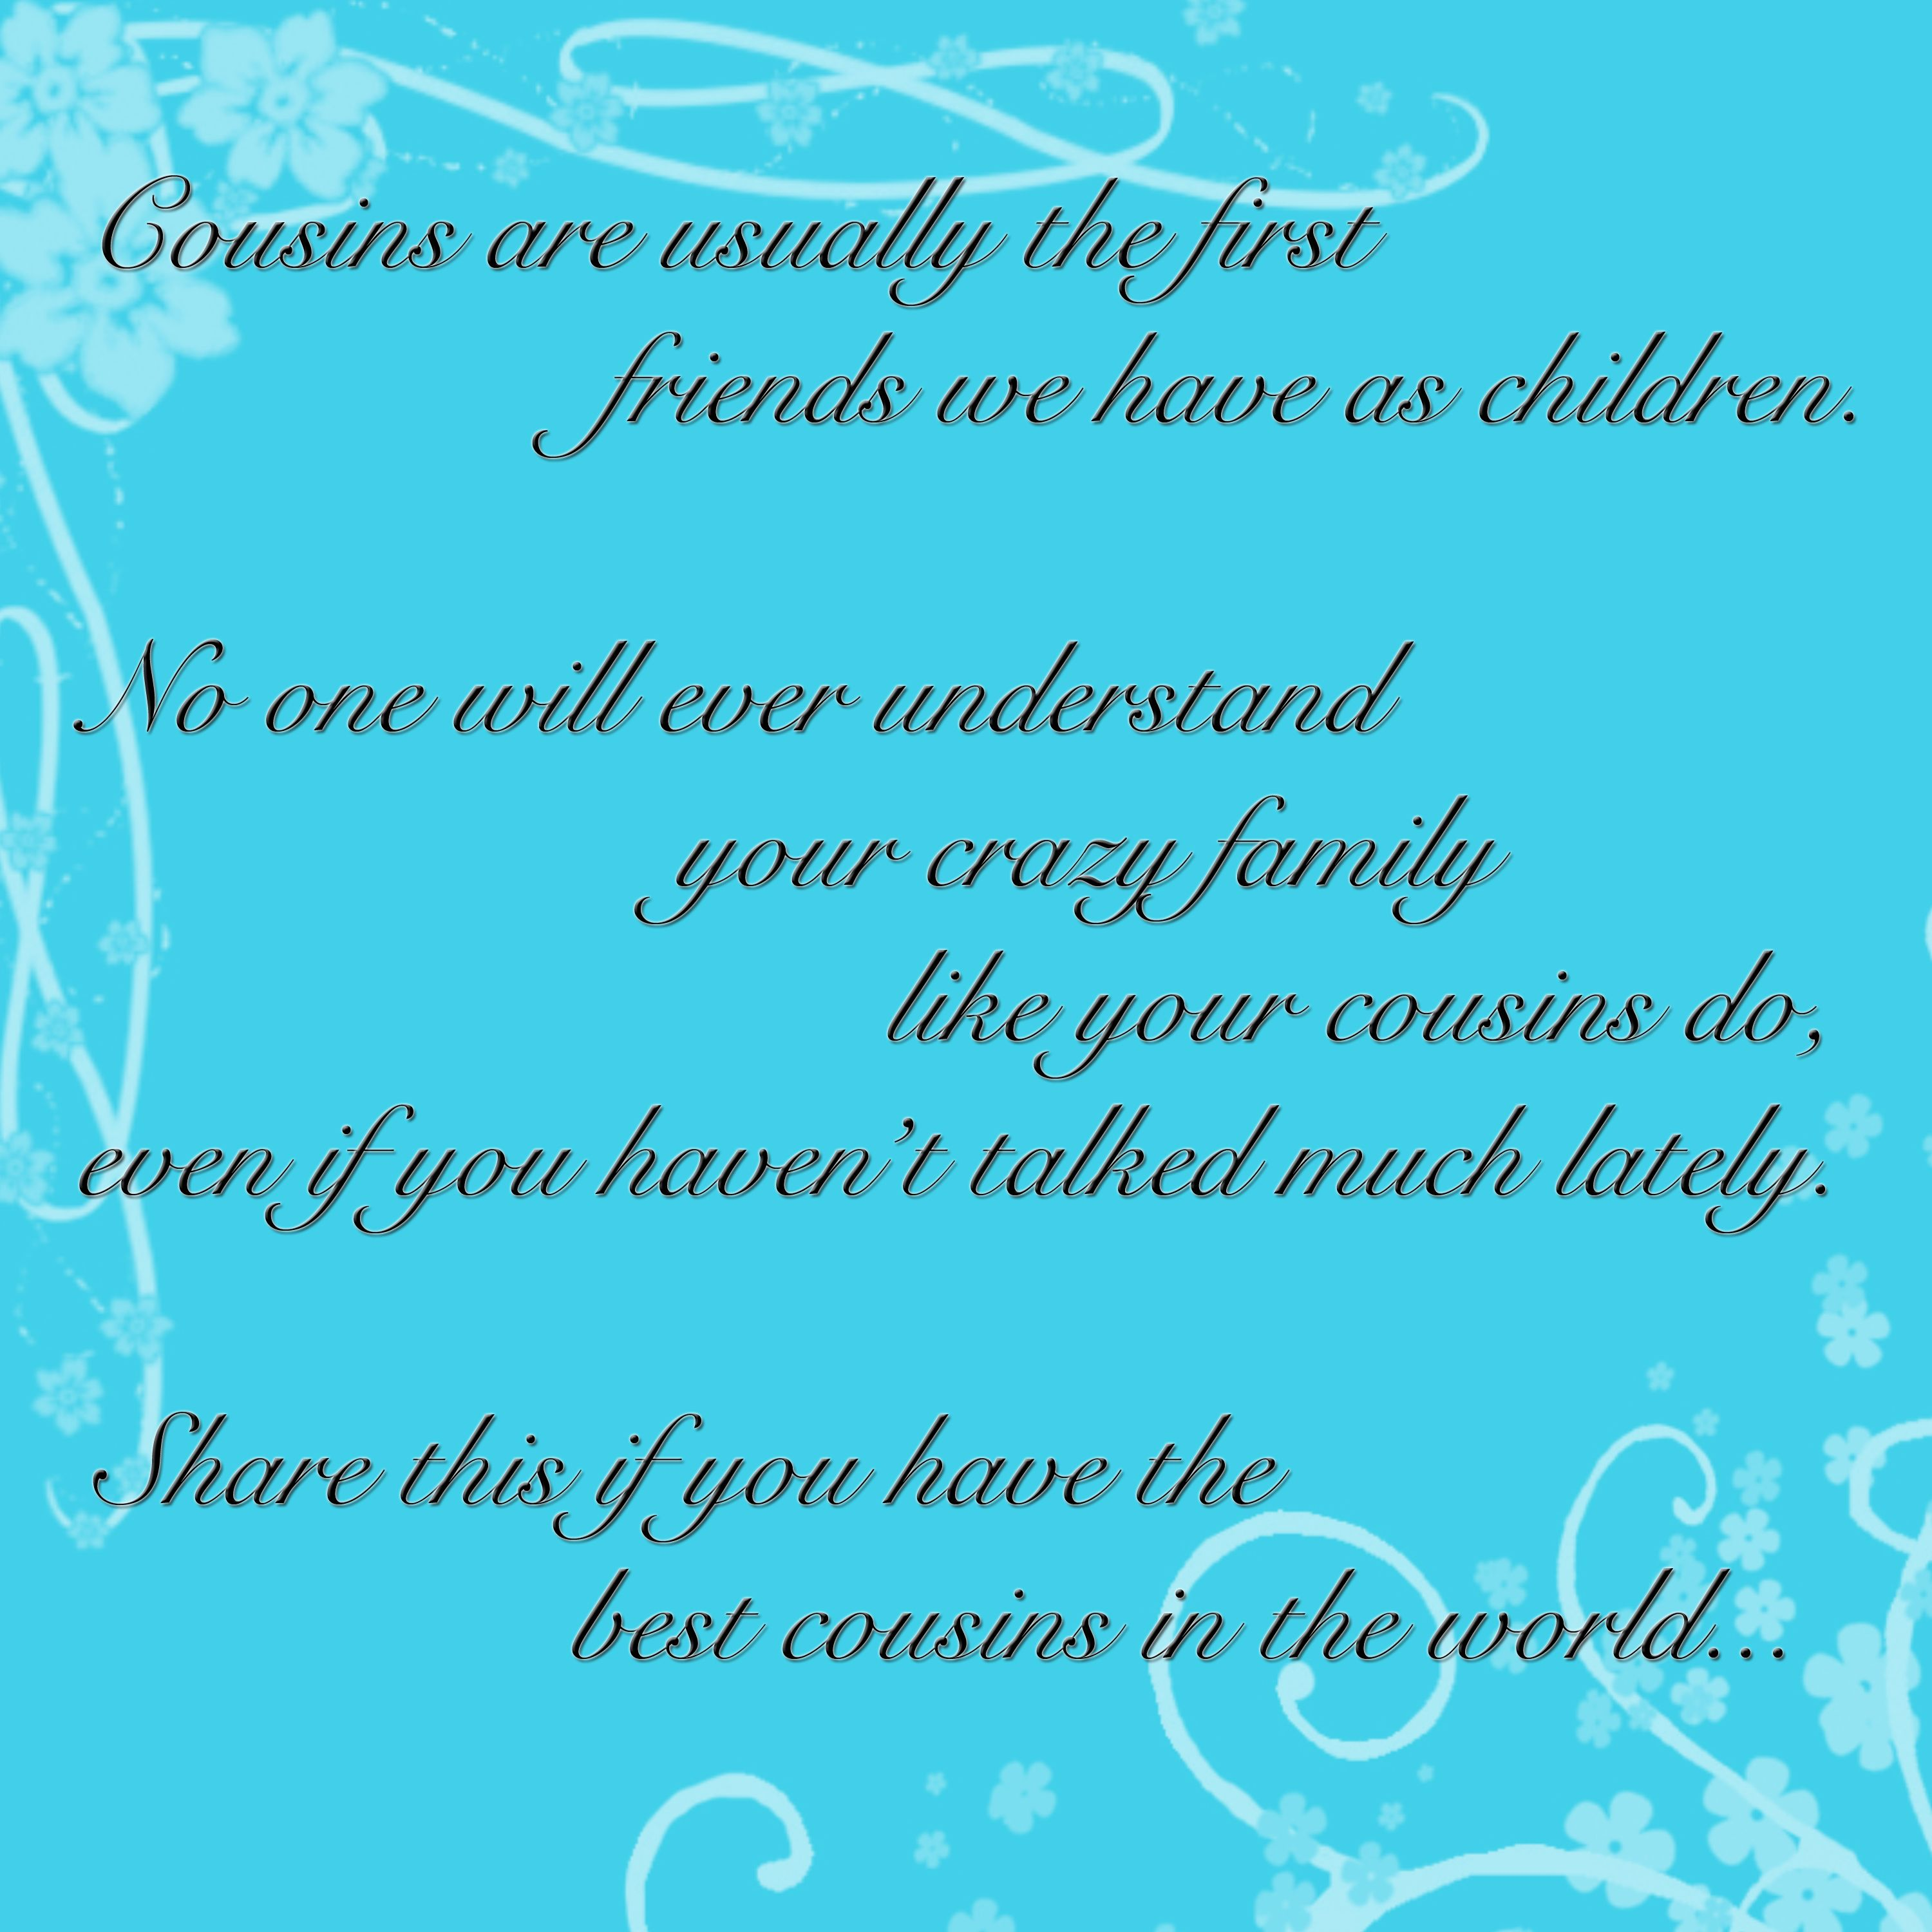 Inspirational Quotes For Cousins: Love My Cousin. Thank You For Being There For Me The Past